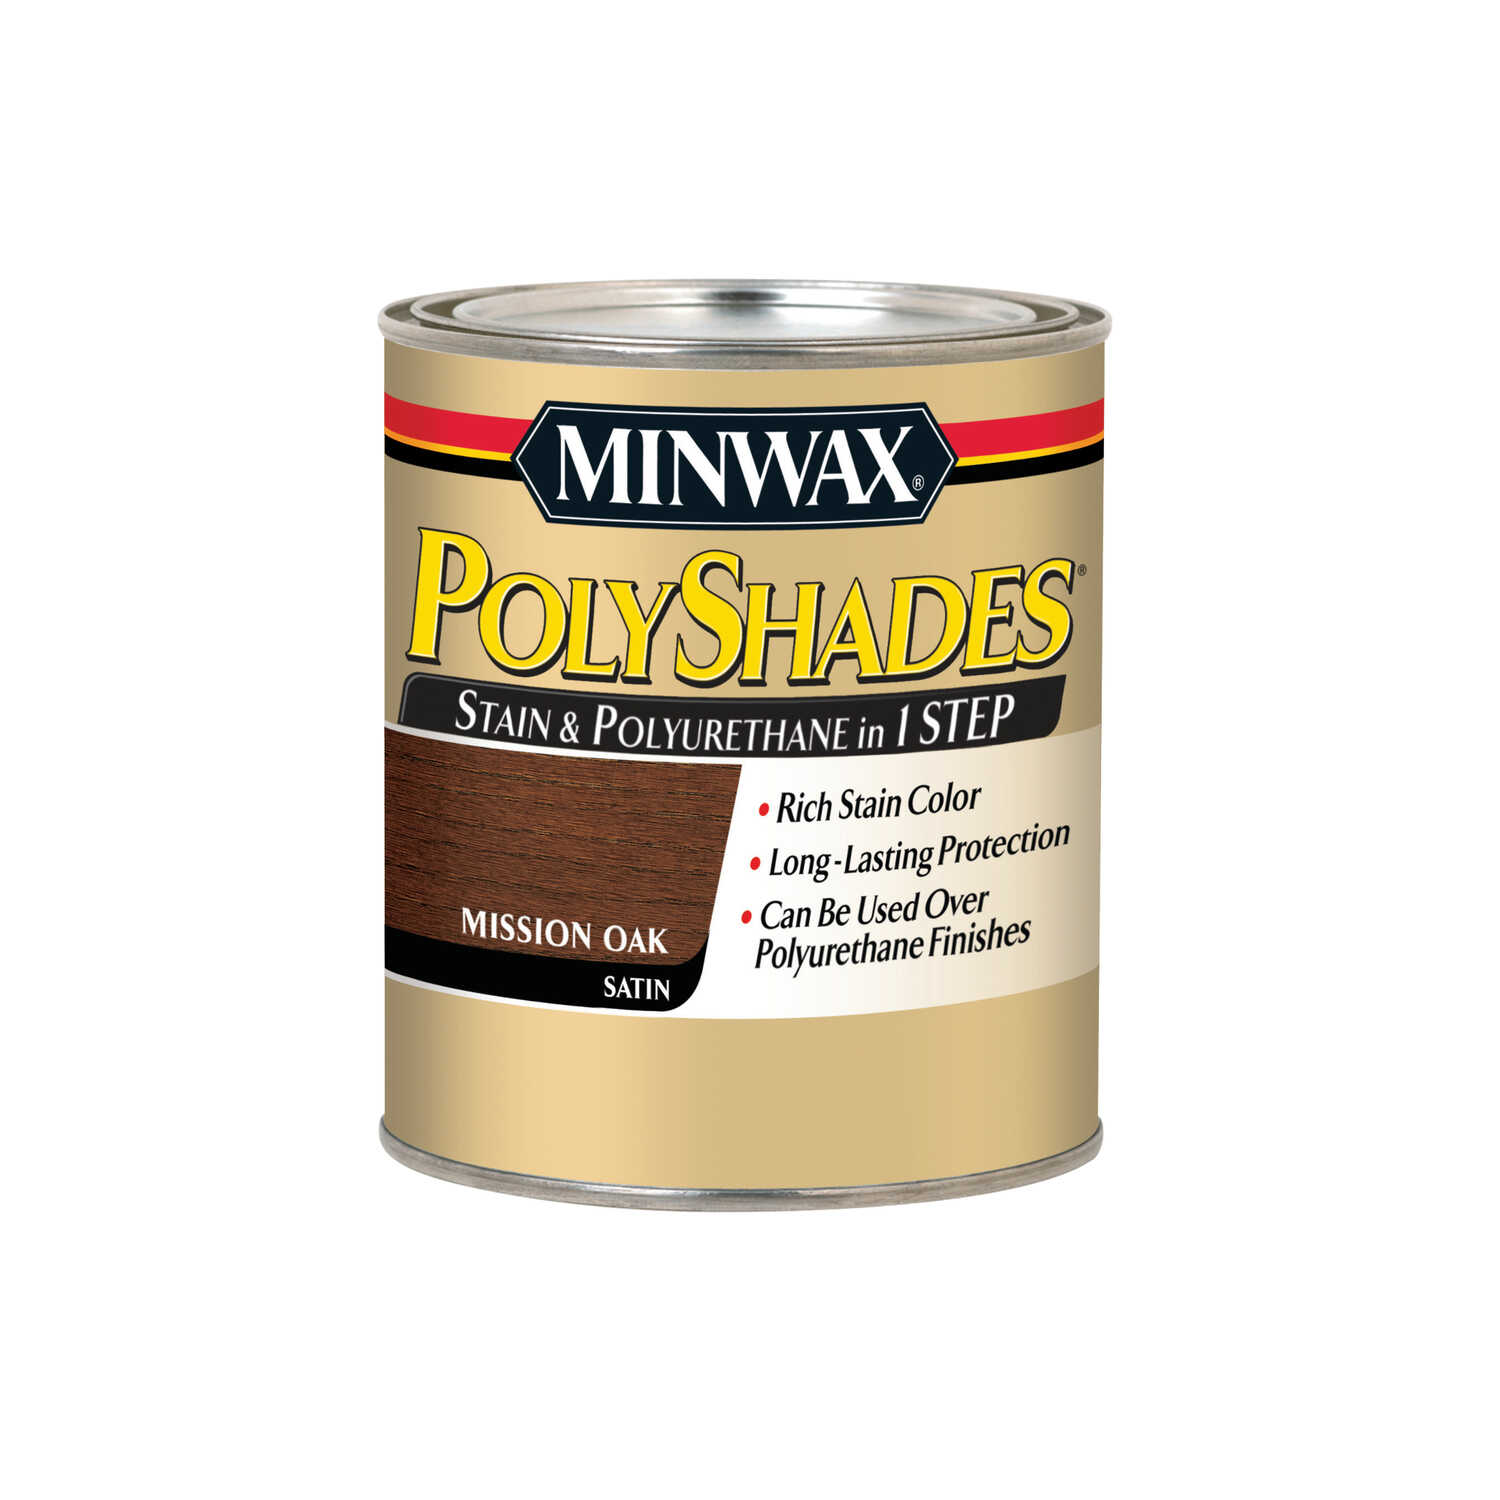 Minwax  PolyShades  Semi-Transparent  Satin  Mission Oak  Oil-Based  Stain  1 qt.